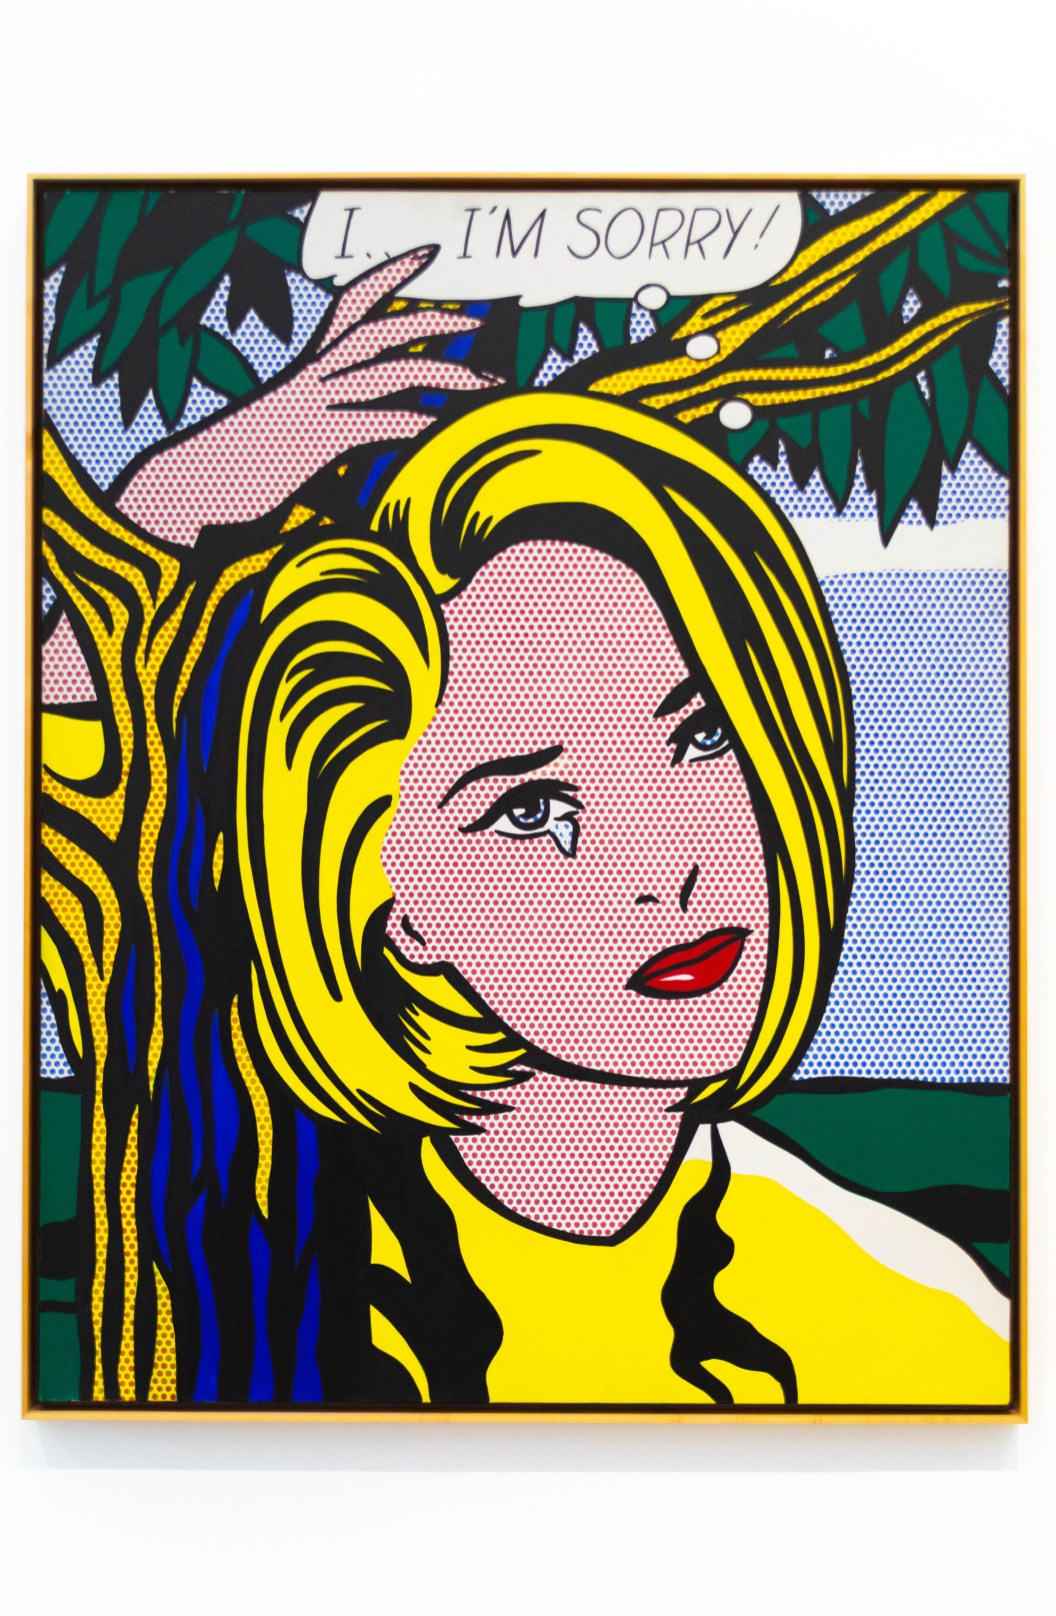 I...I'm Sorry! by Roy Lichtenstein at The Broad Museum in Los Angeles